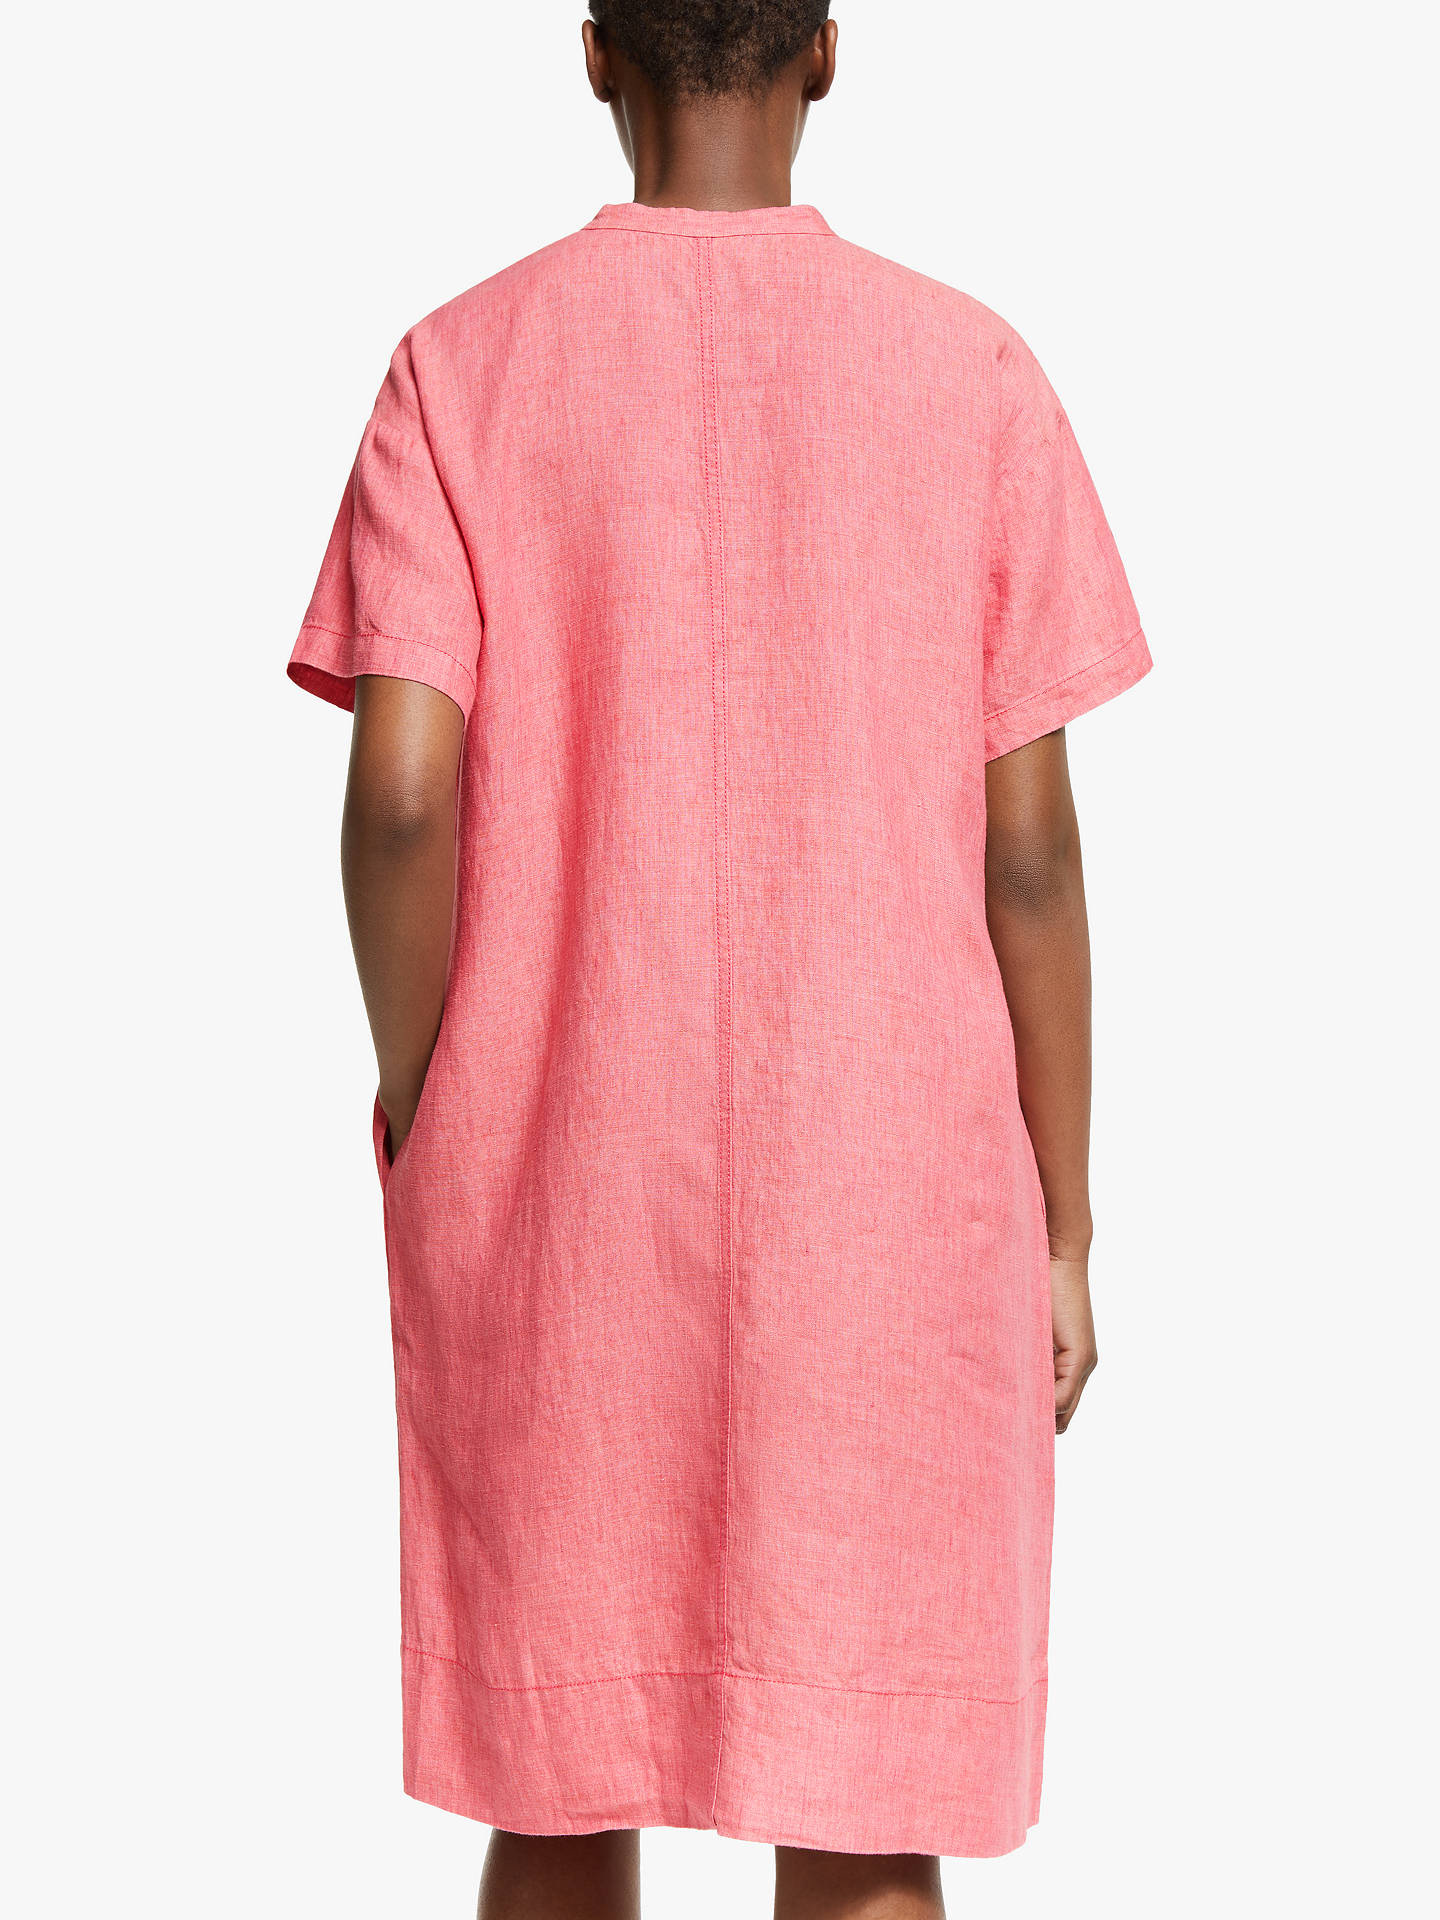 Buy EILEEN FISHER Linen Shift Dress, Bright Sandstone, XS Online at johnlewis.com